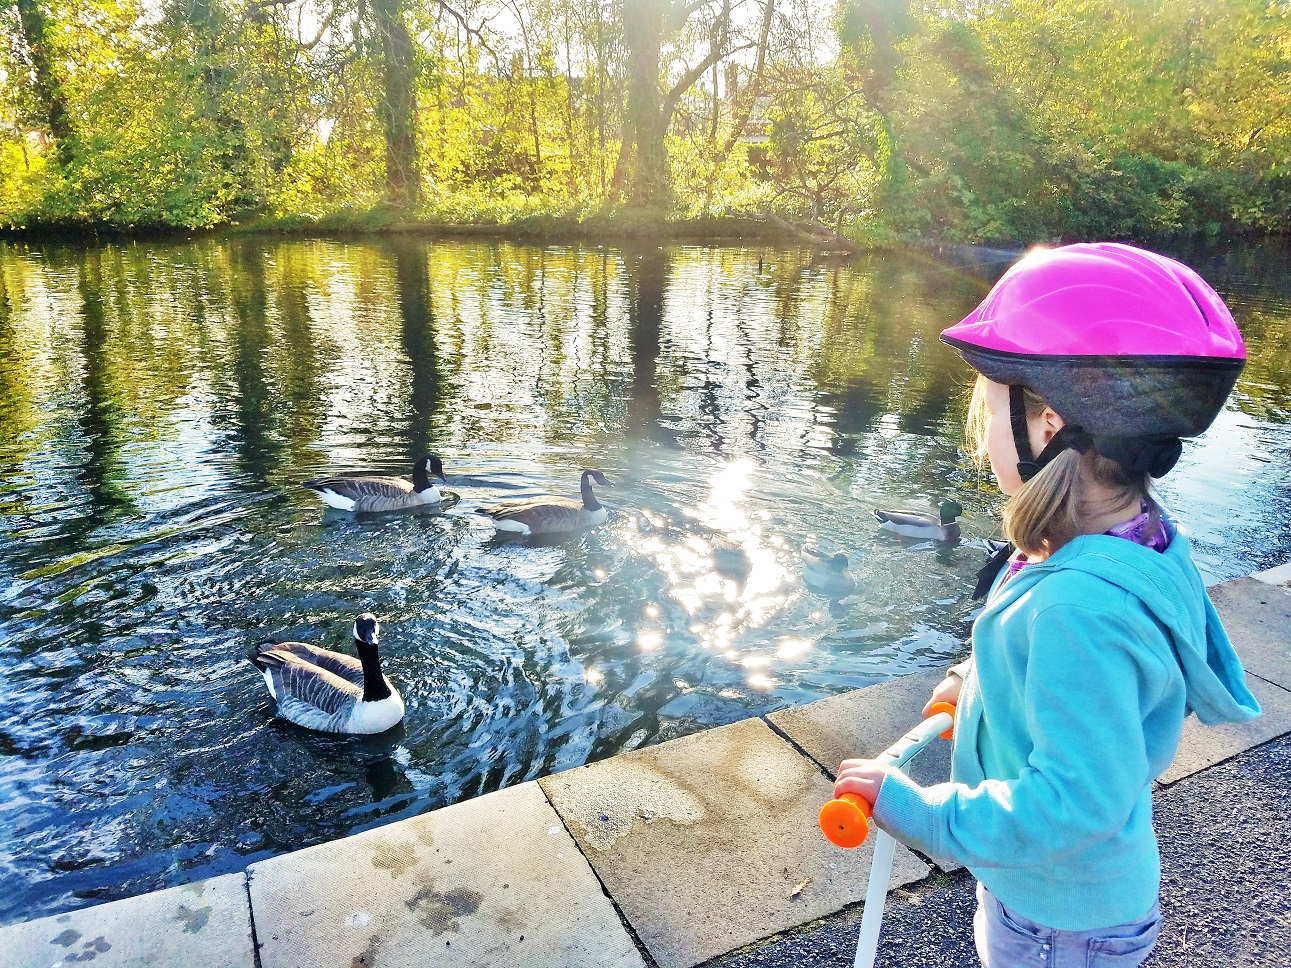 Hidden issues can cause regression - child looking at the ducks